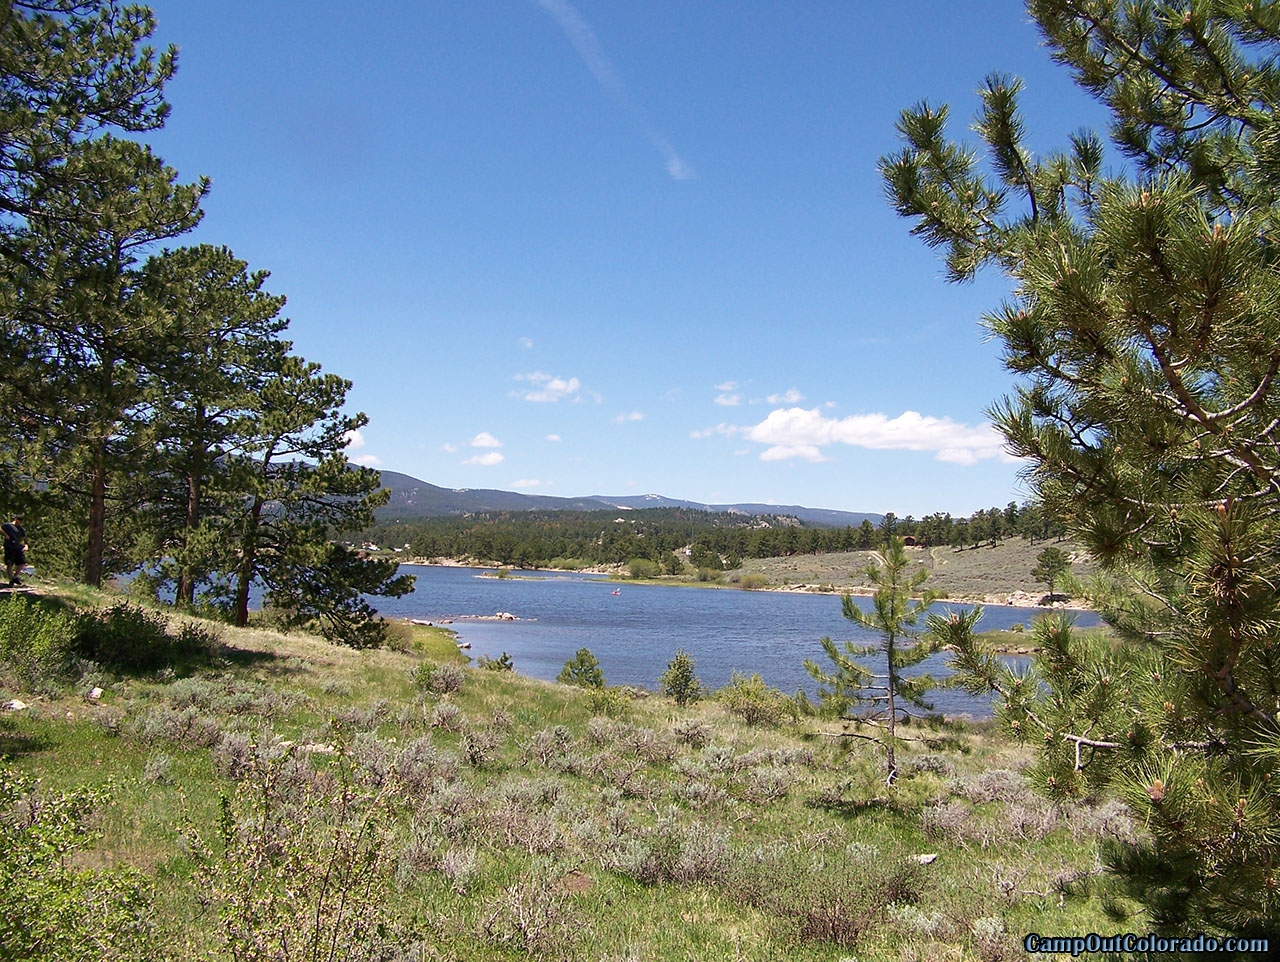 campoutcolorado-west-lake-lake-view